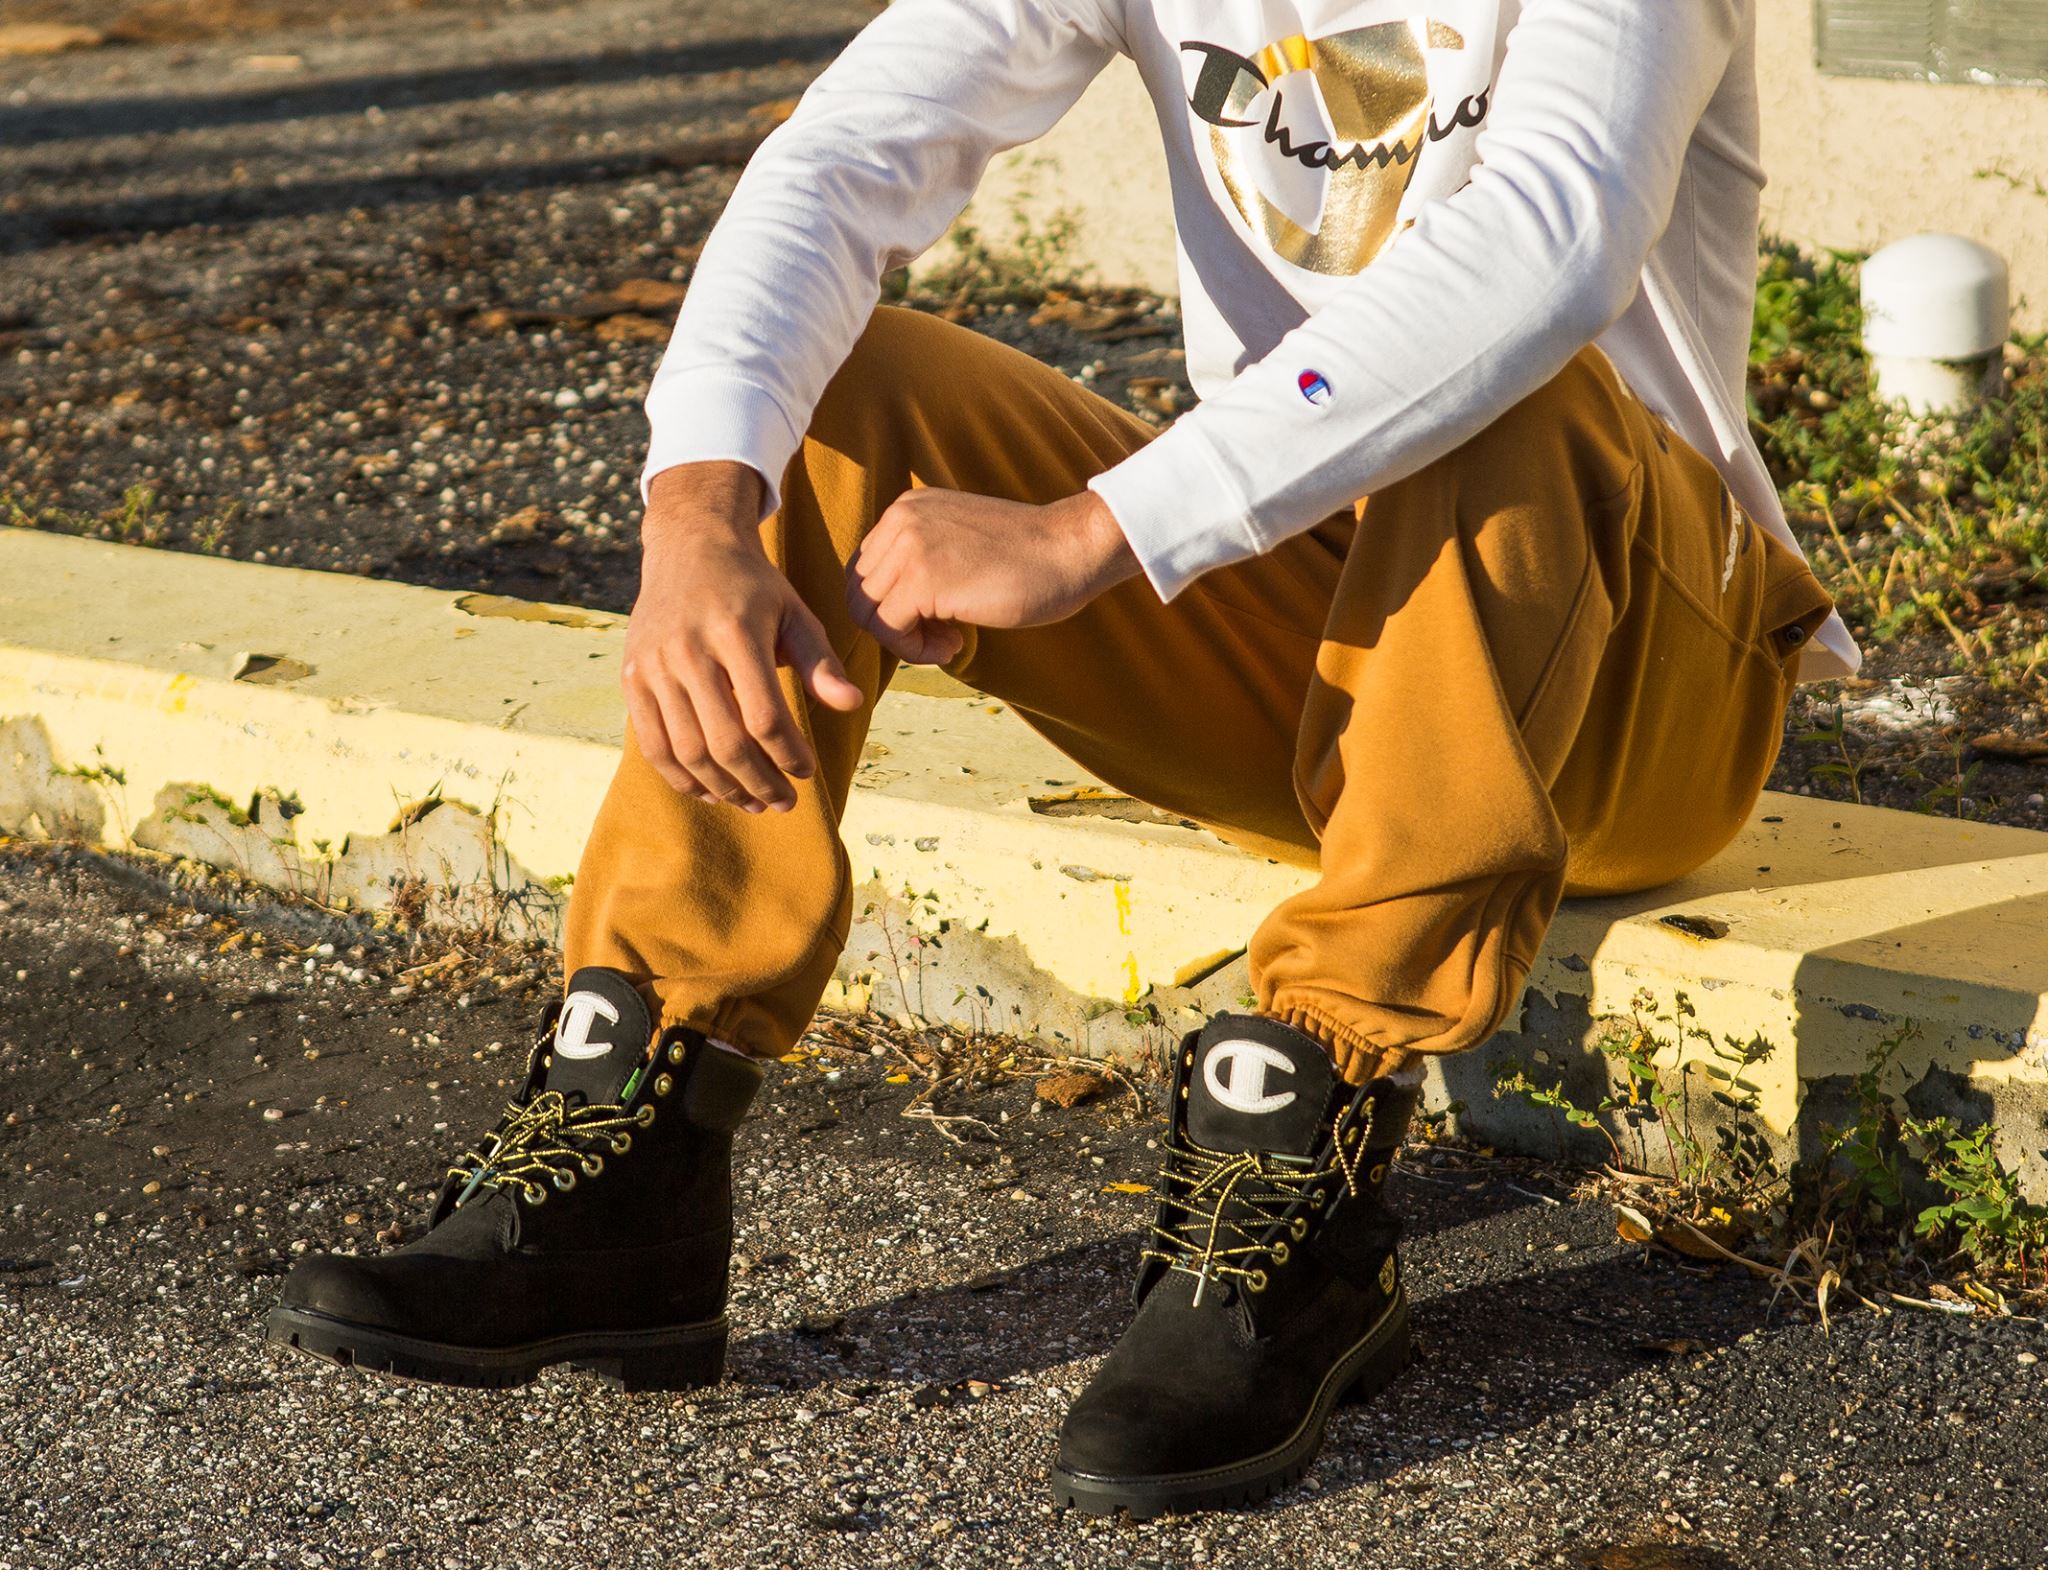 Champion X Timberland Boots And Clothing Sneakerfits Com